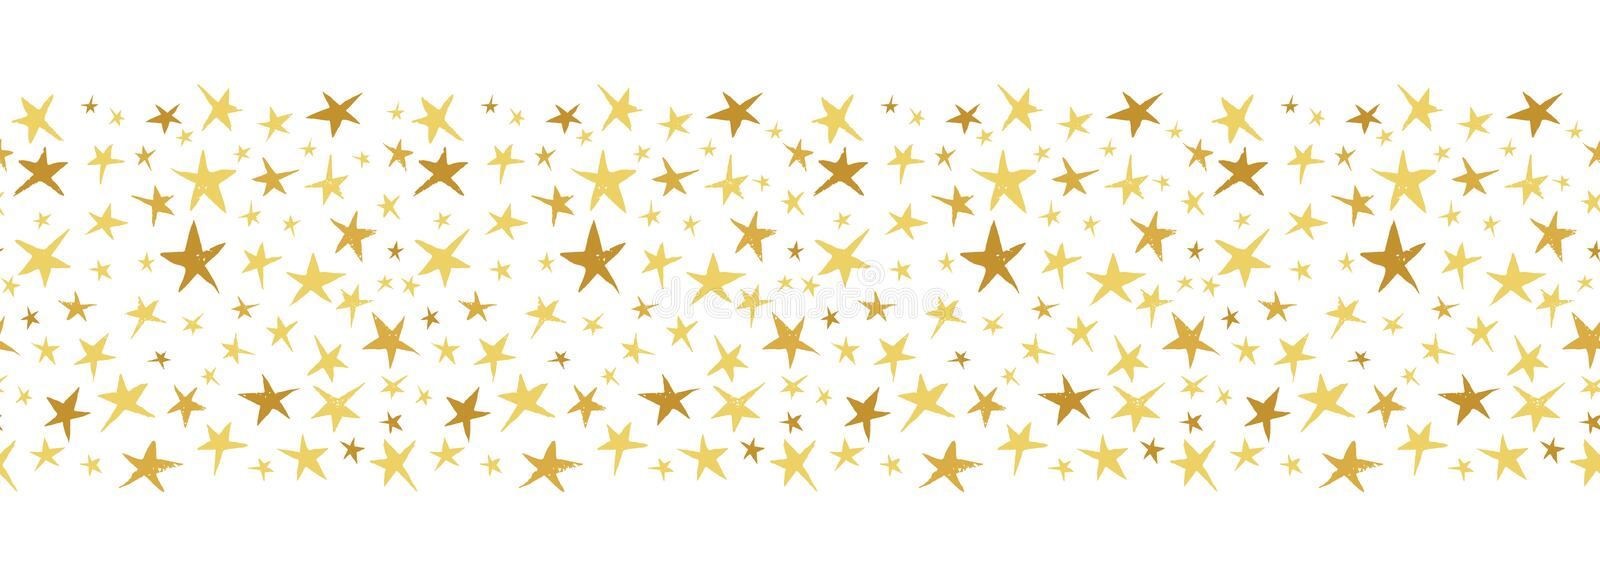 Linocut Gold and Yellow Stars on White Background Vector Seamless Border Pattern. Winter Christmas Hand Made Print stock illustration